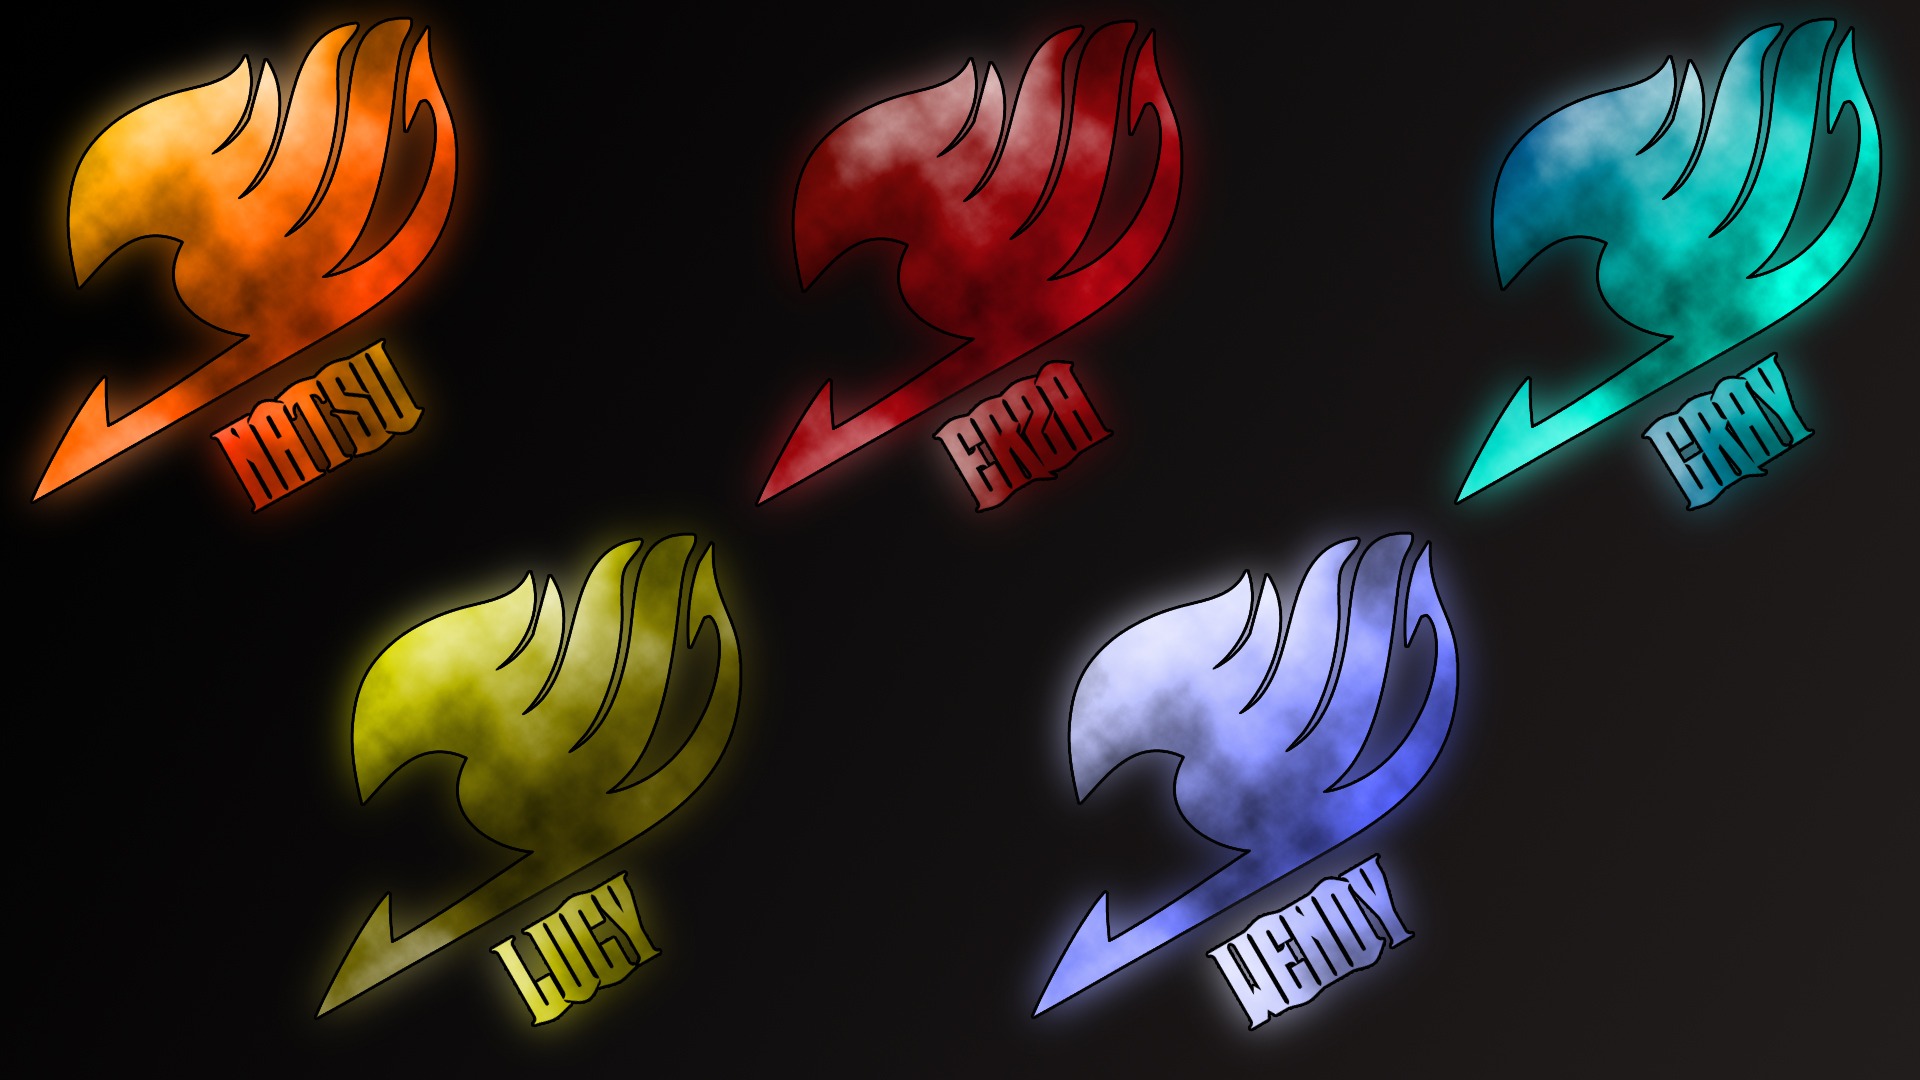 Fairy Tail logos by Anzachs 1920x1080